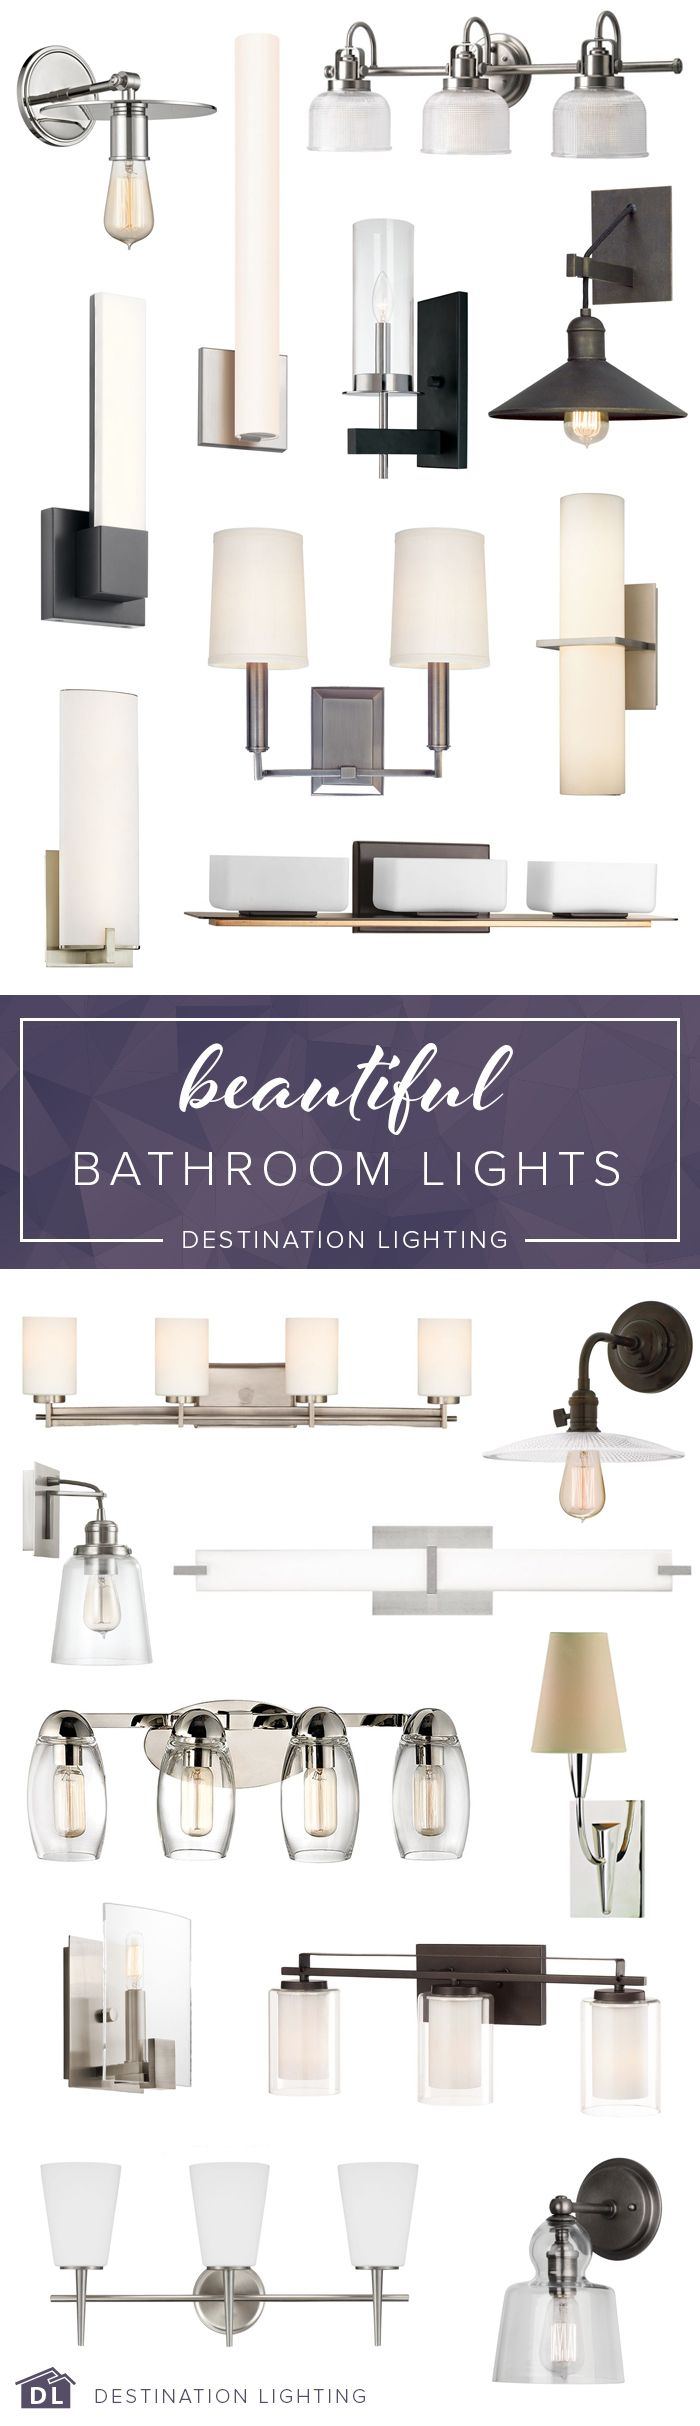 All the beautiful bathroom lighting you could dream of, all in one place. Check out these stunning styles and more at Destination Lighting.